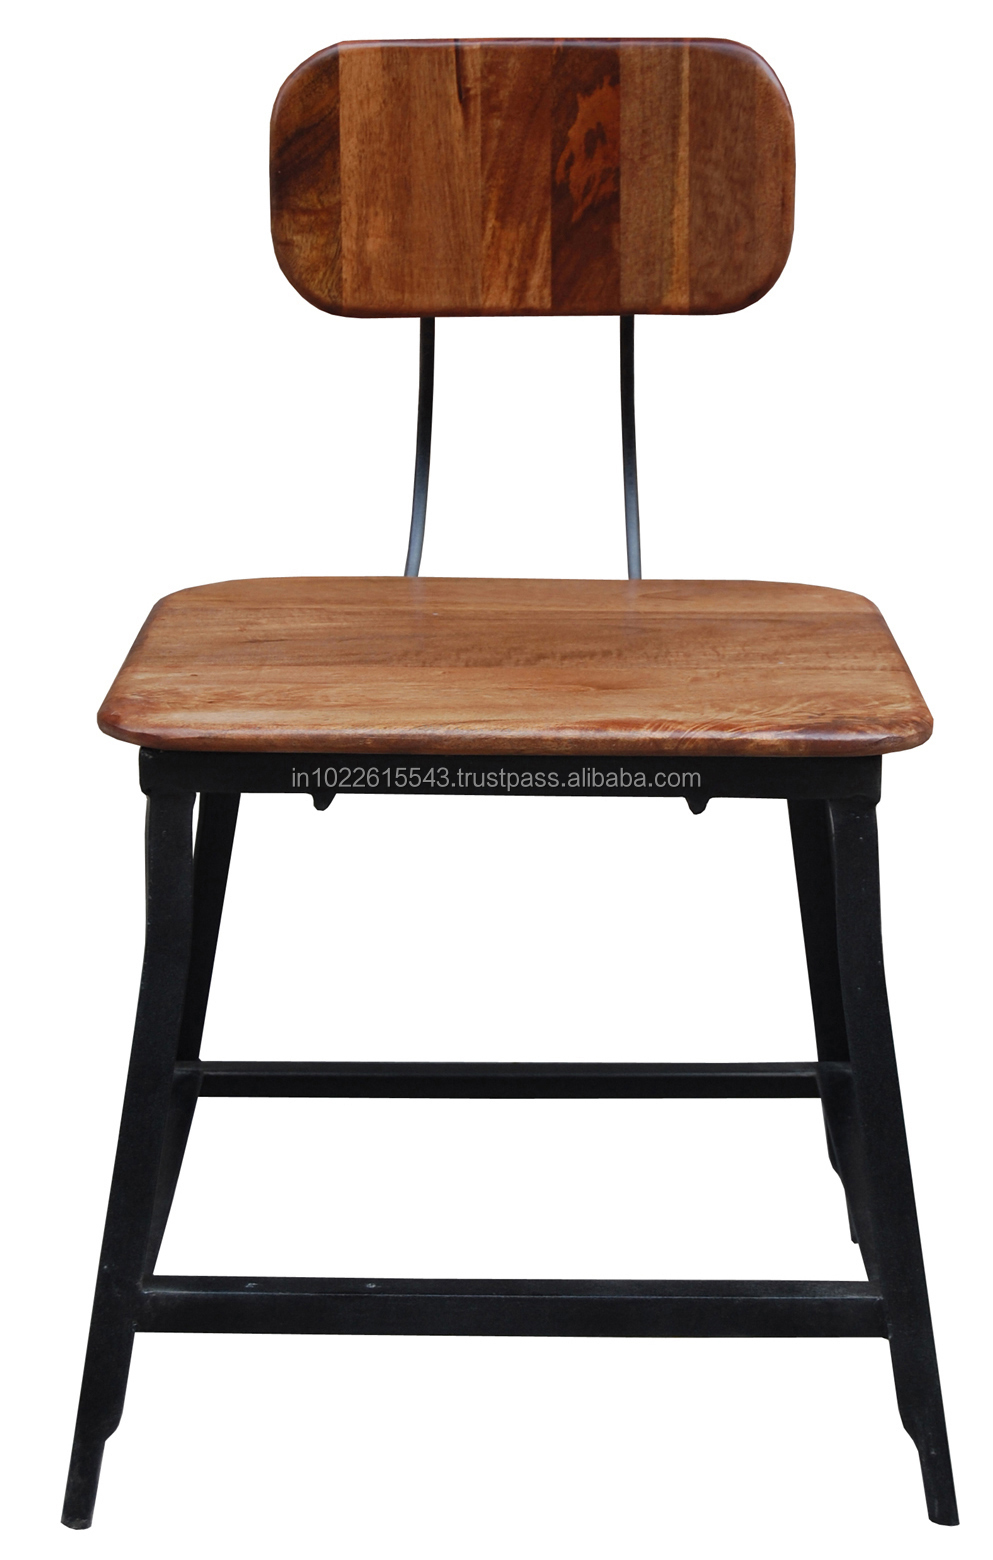 Industrial Bar Stool Exporter Vintage Bar Stool Cheap Bar Stool Morden Bar Stool View